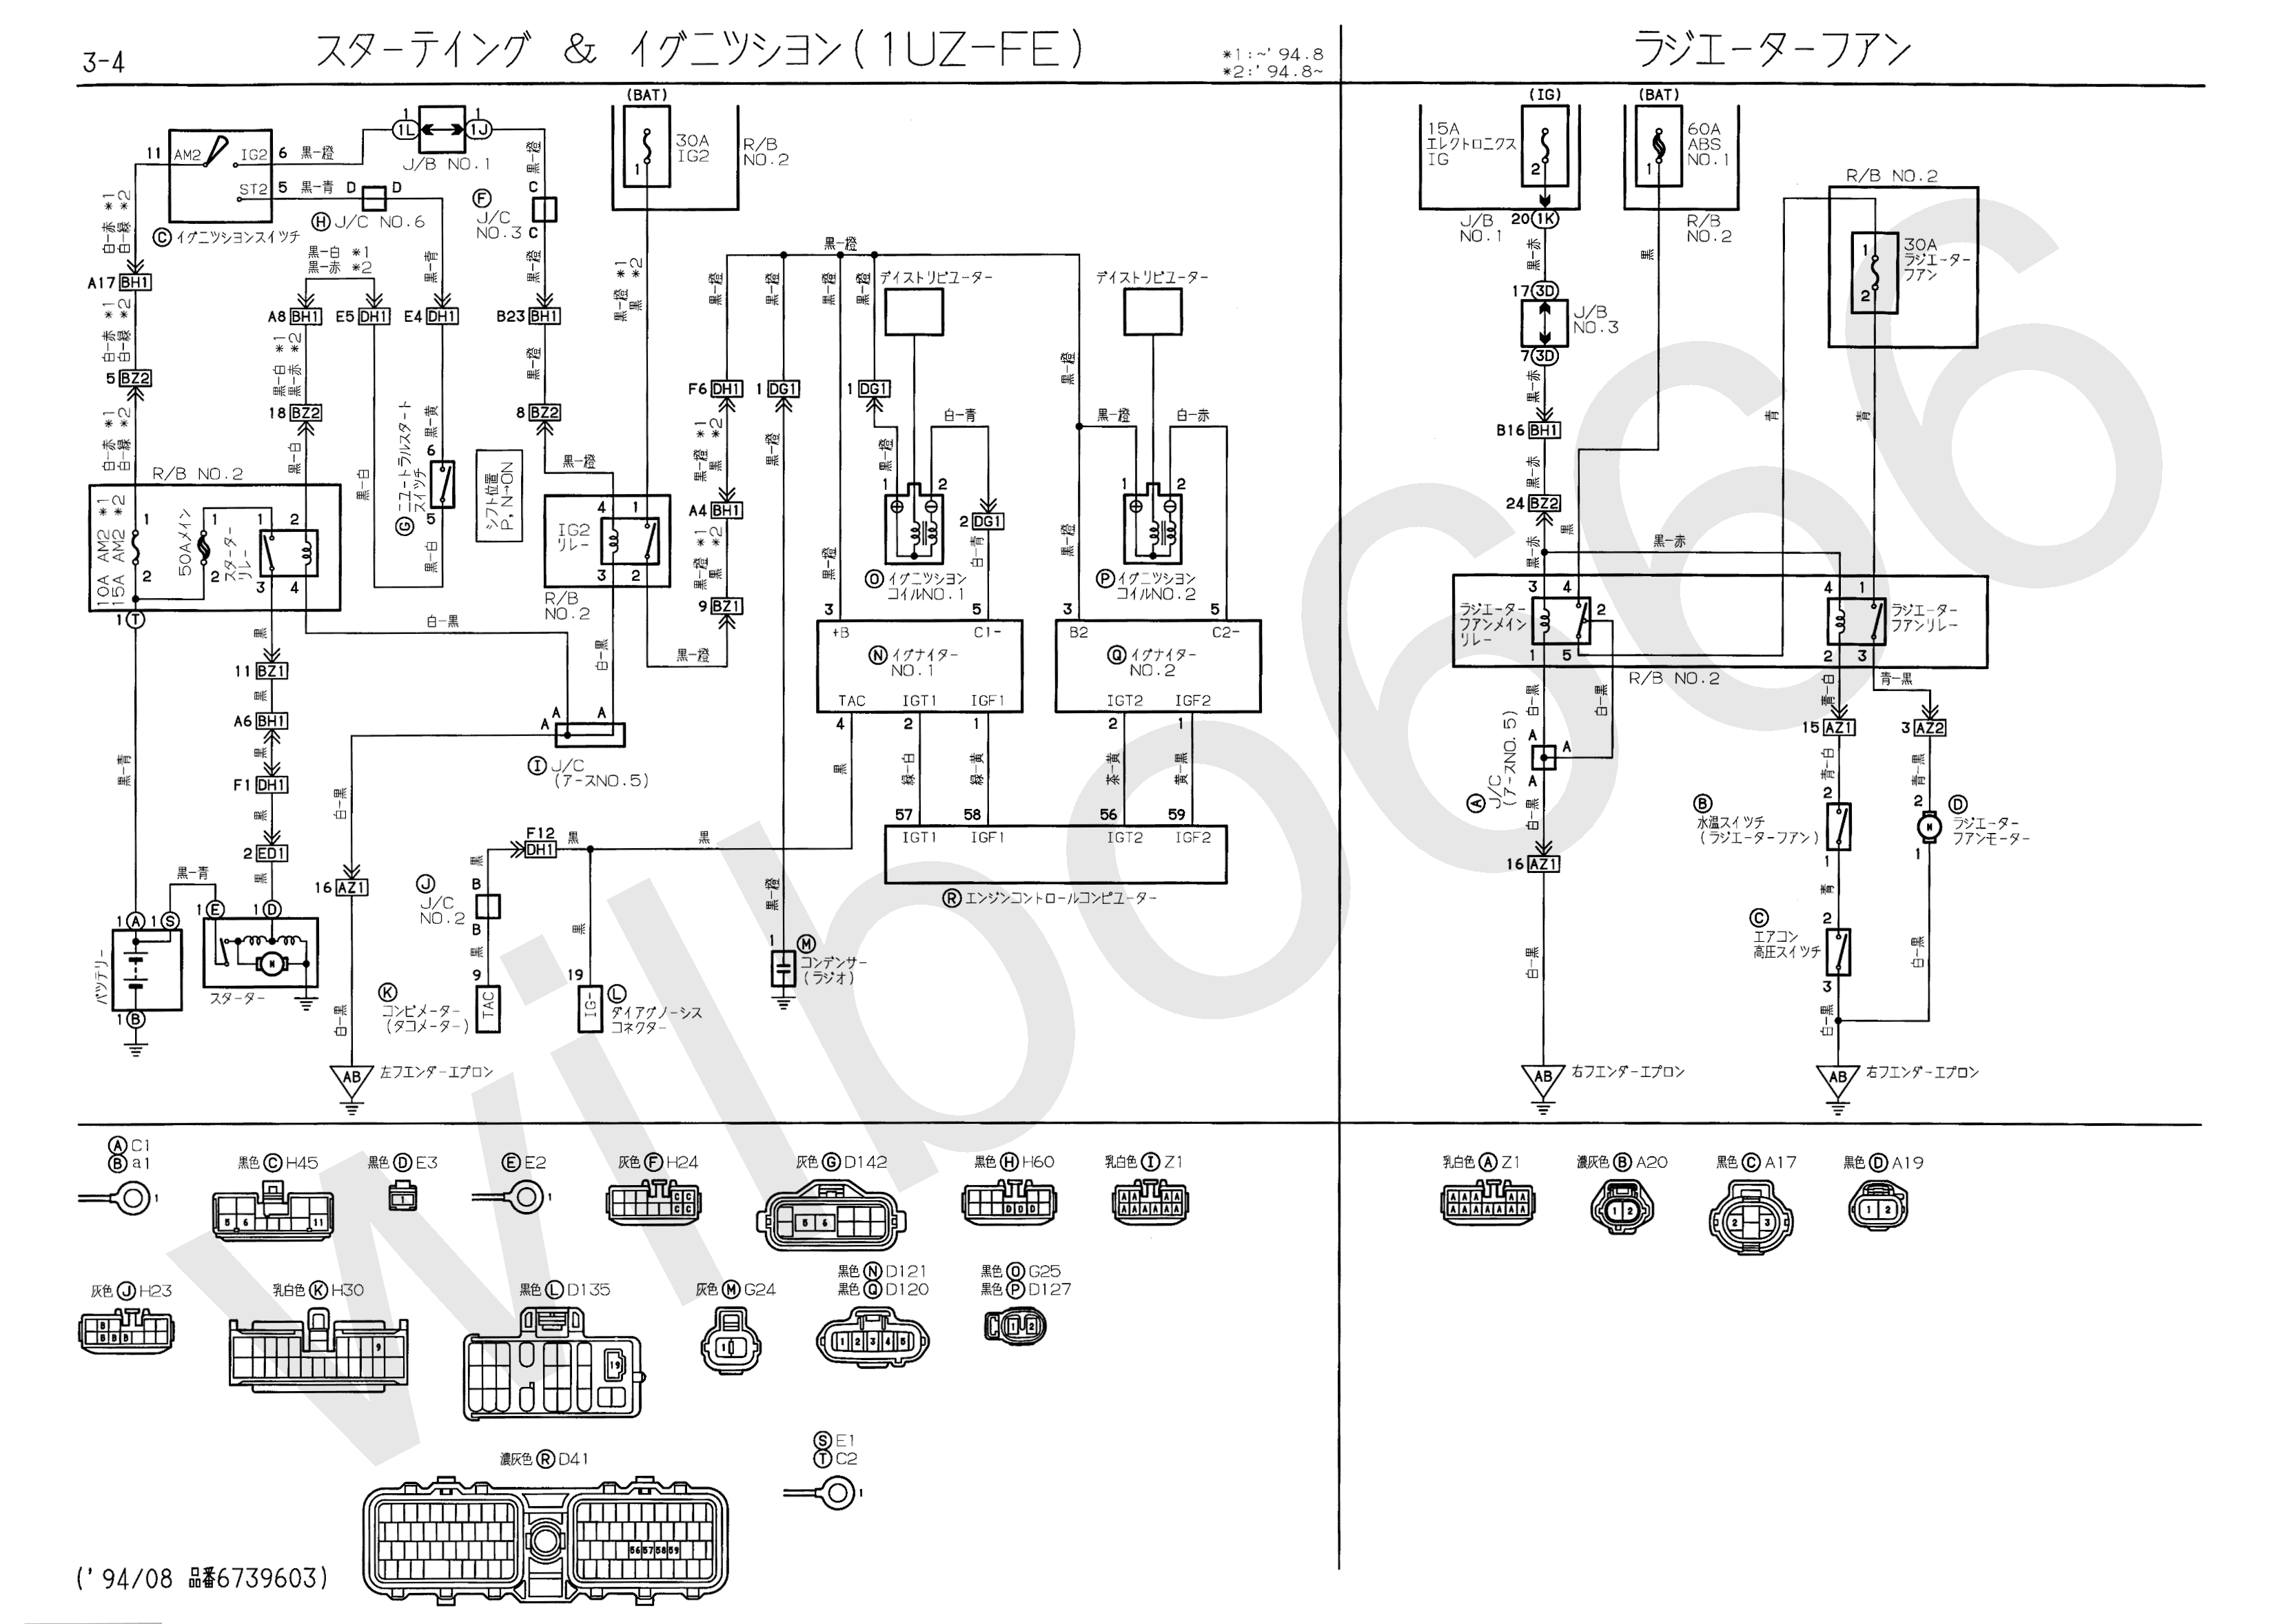 1uz Fe Ecu Wiring Diagram